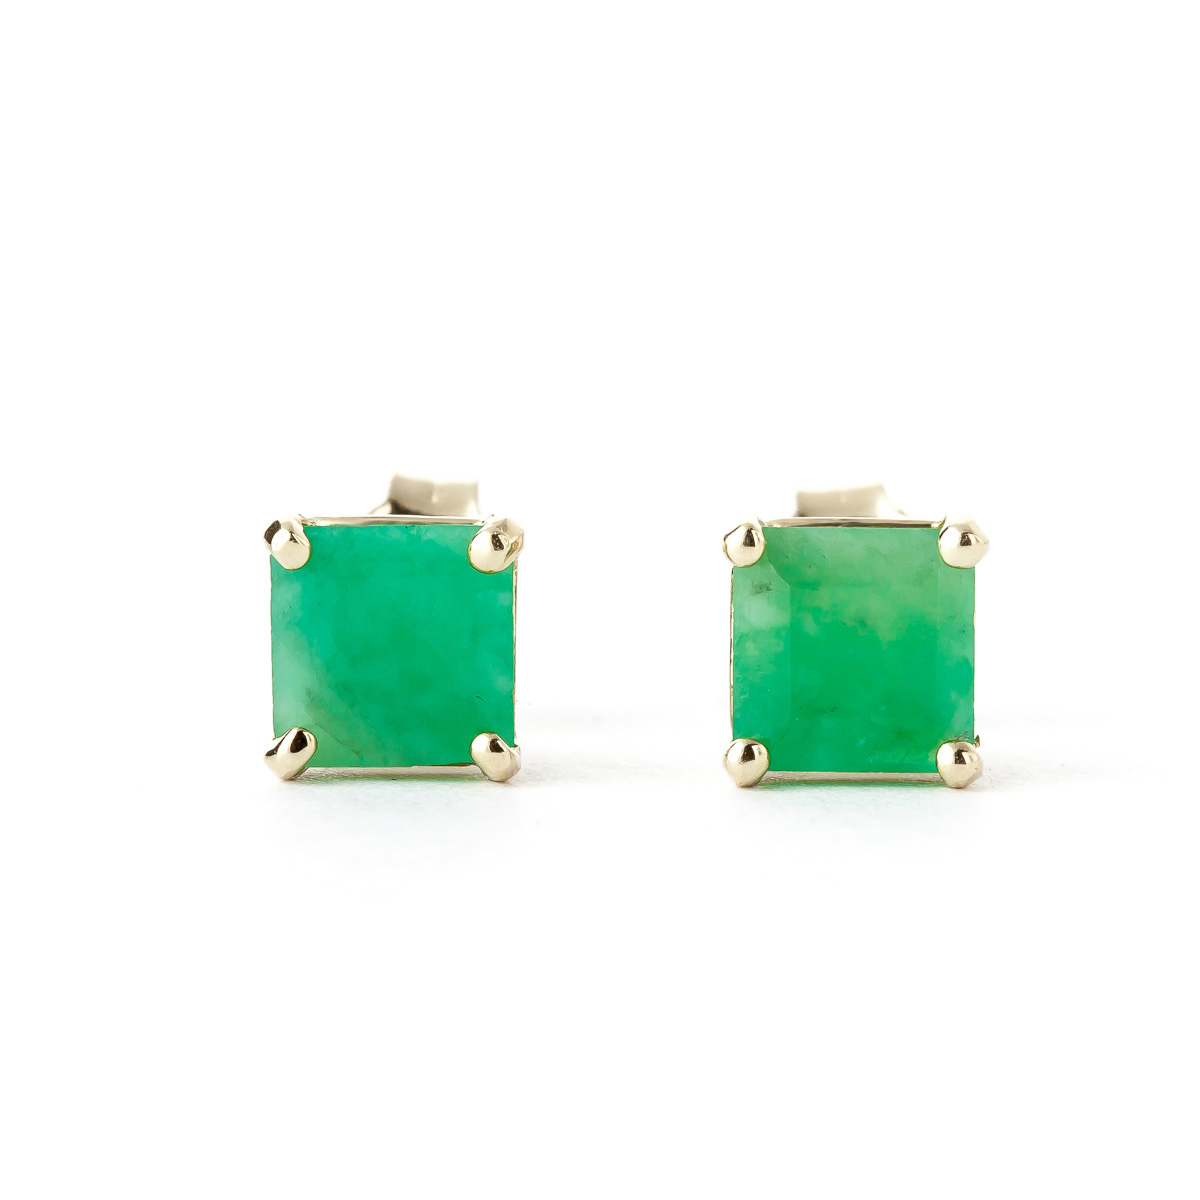 Emerald Stud Earrings 2.9 ctw in 9ct Gold